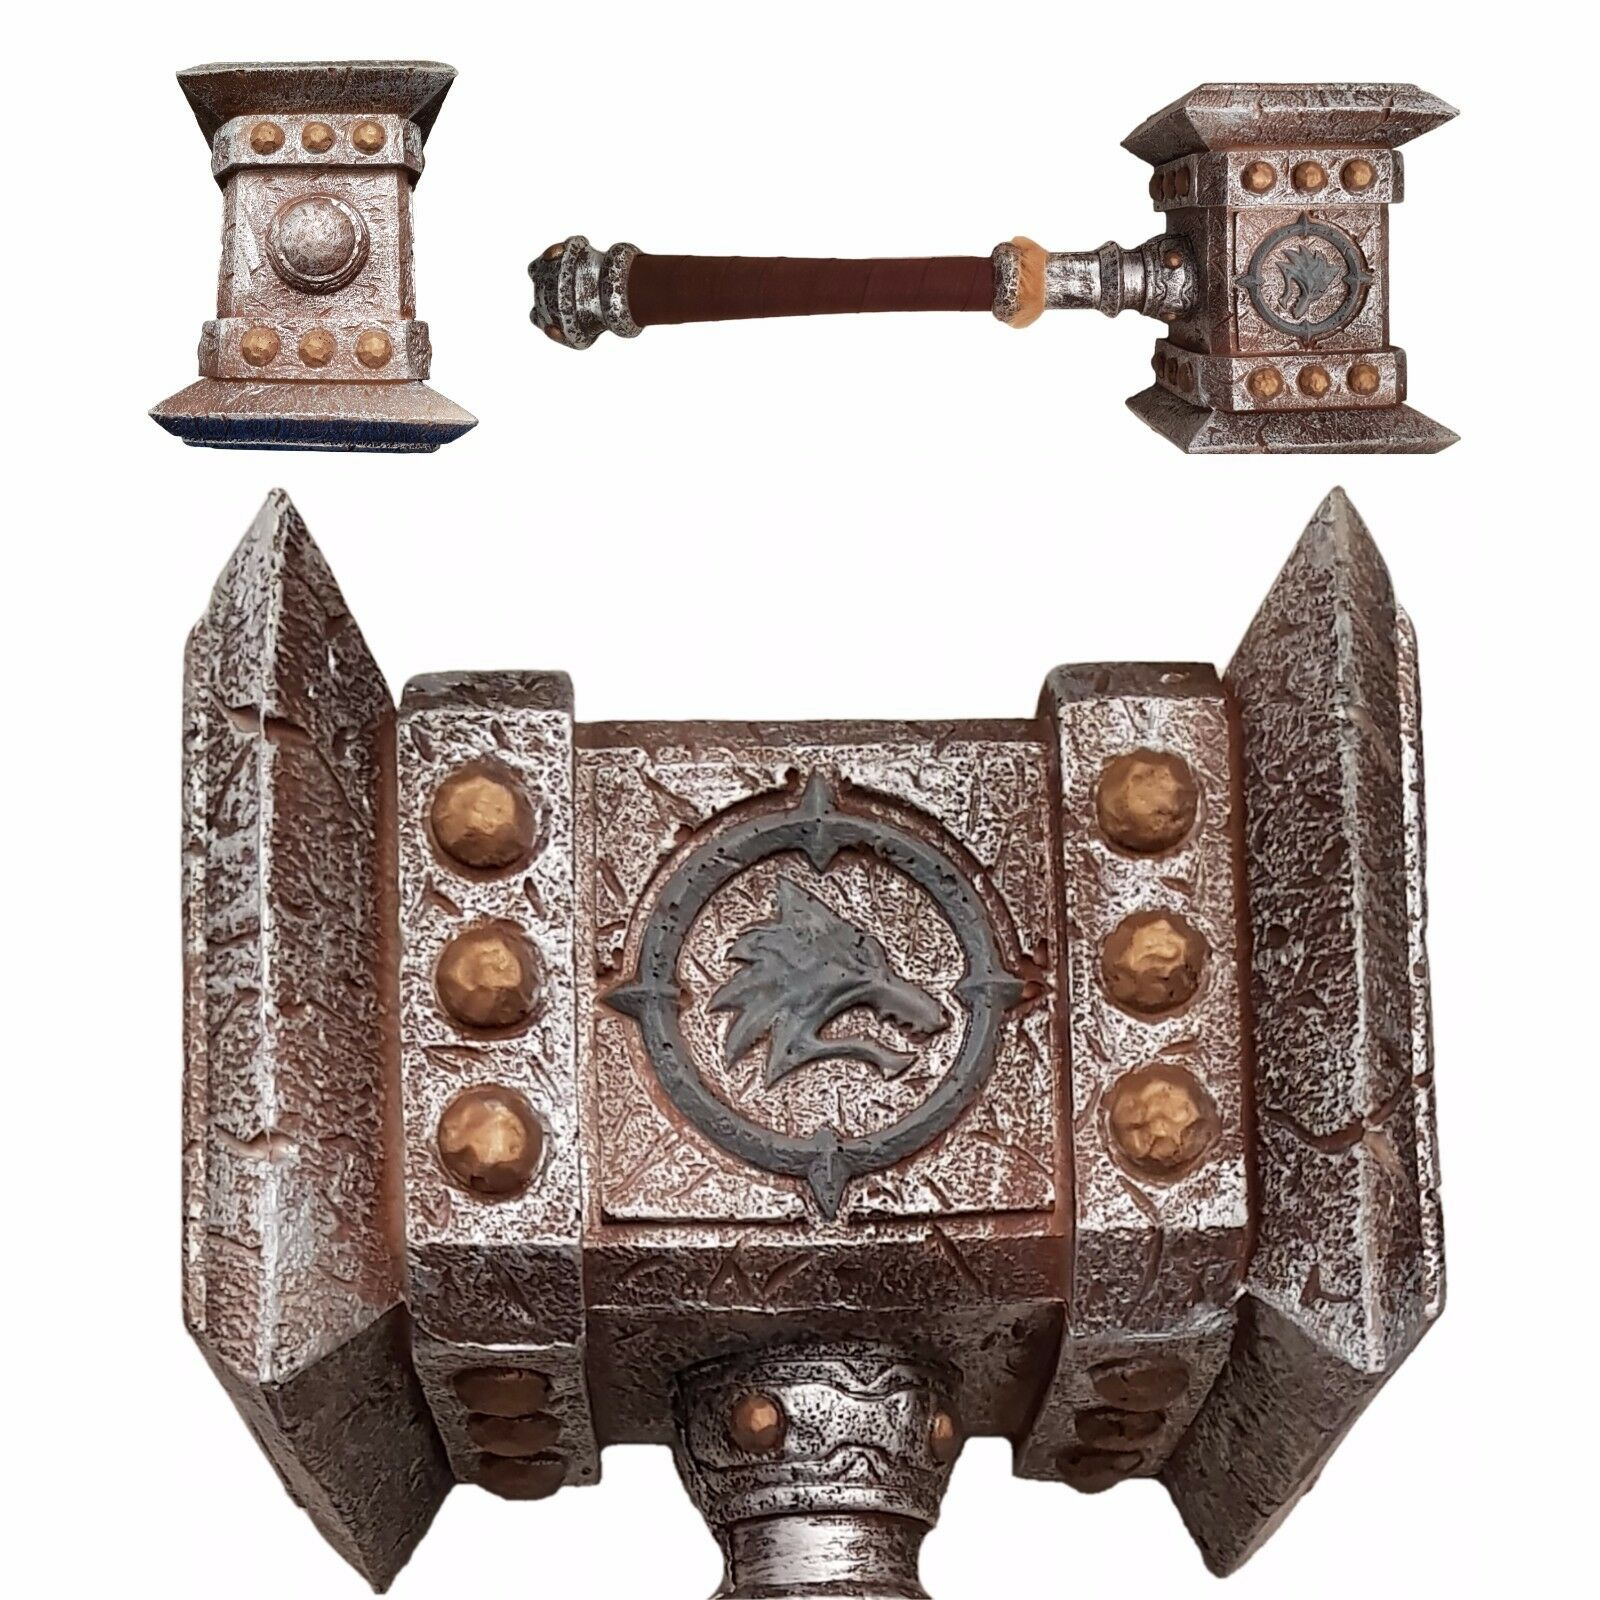 WoW DOOMHAMMER  AMAZING QUALITY SOFT FOAM WarCraft Large 56cm 1KG CosPlay LARP